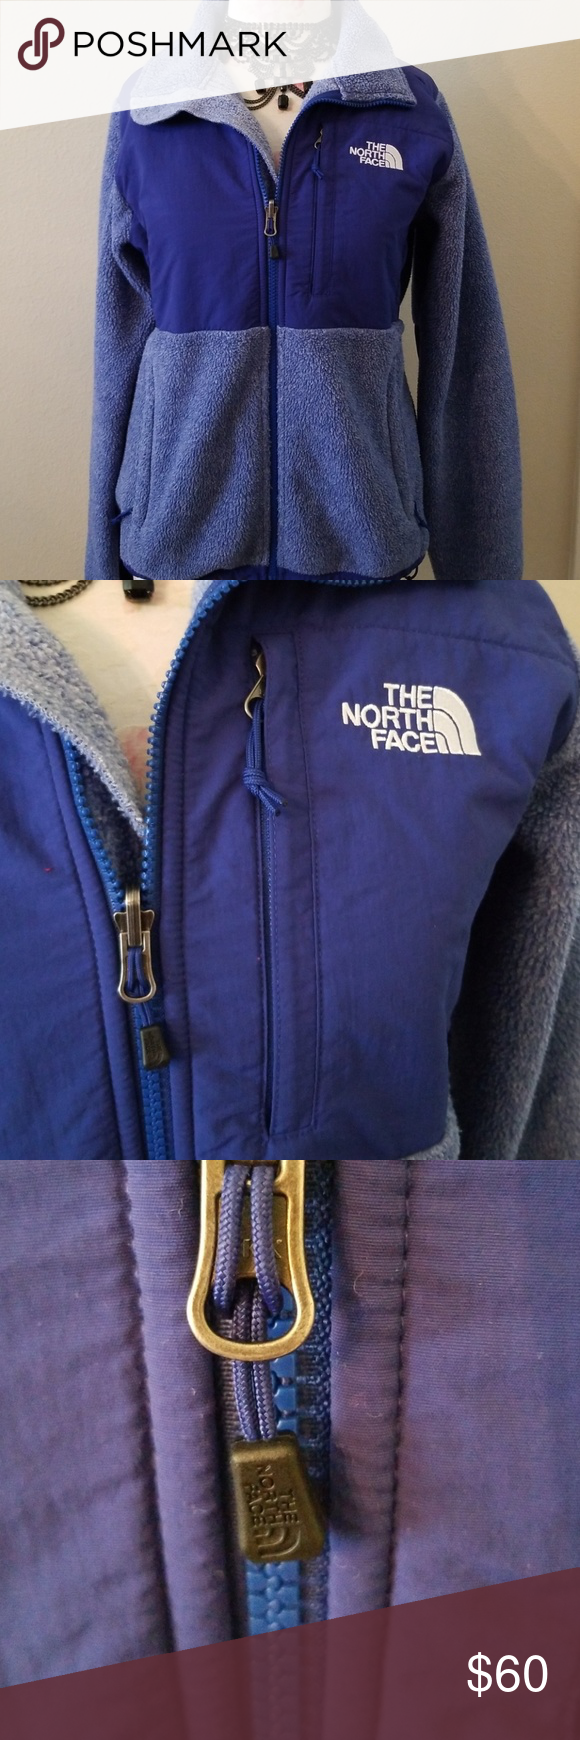 c6bf77c53 The North Face Denali Jacket The North Face brings an eco-friendly ...